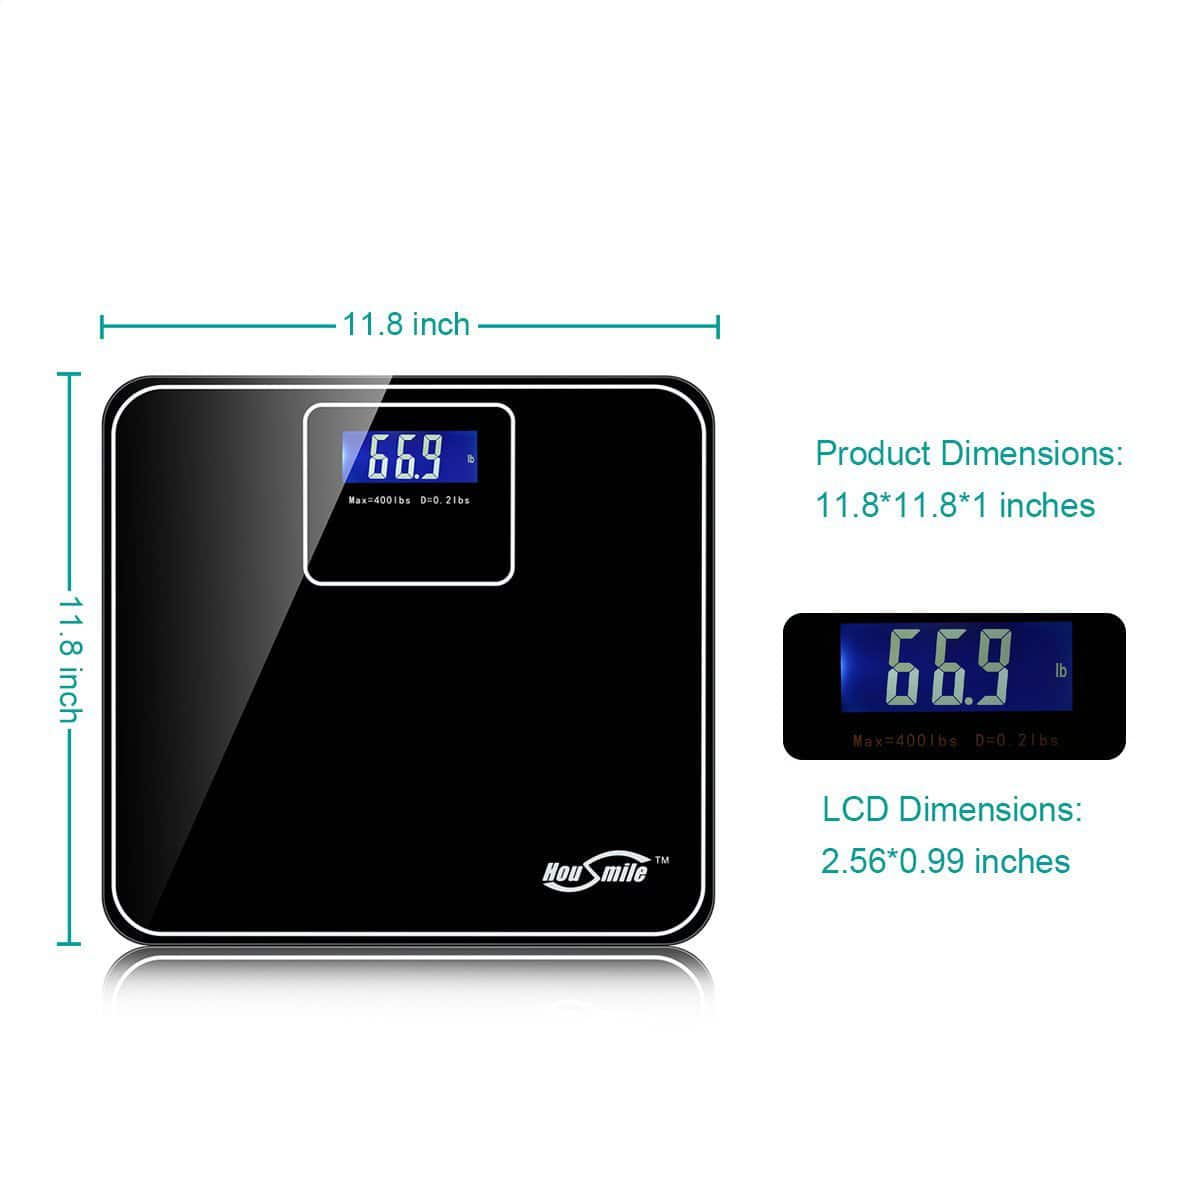 Housmile Precision 400 Lb Digital Bathroom Scale with Extra Large Backlit Display for $17.99 AC + FSSS or FS w/ Prime @ Amazon.com